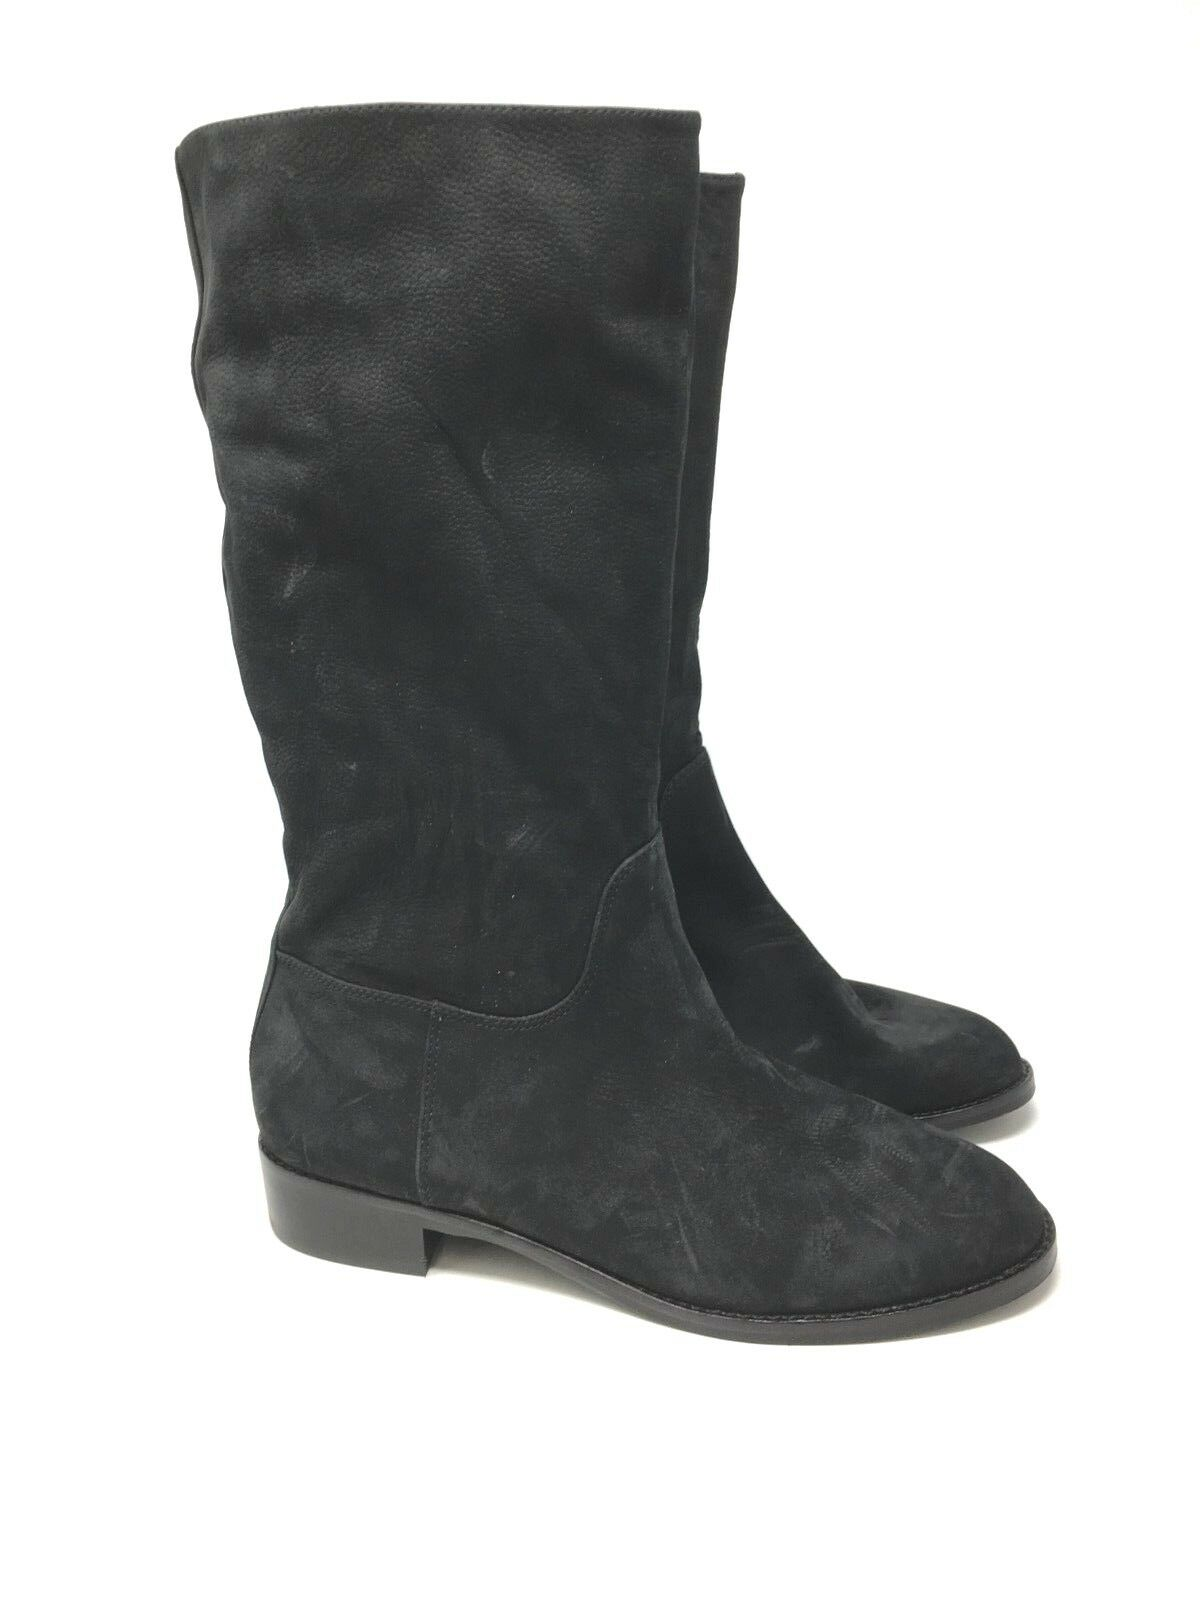 New New New Via Spiga Jules Boot Women Round Toe Leather Mid Calf Boots Size 7.5 93da89